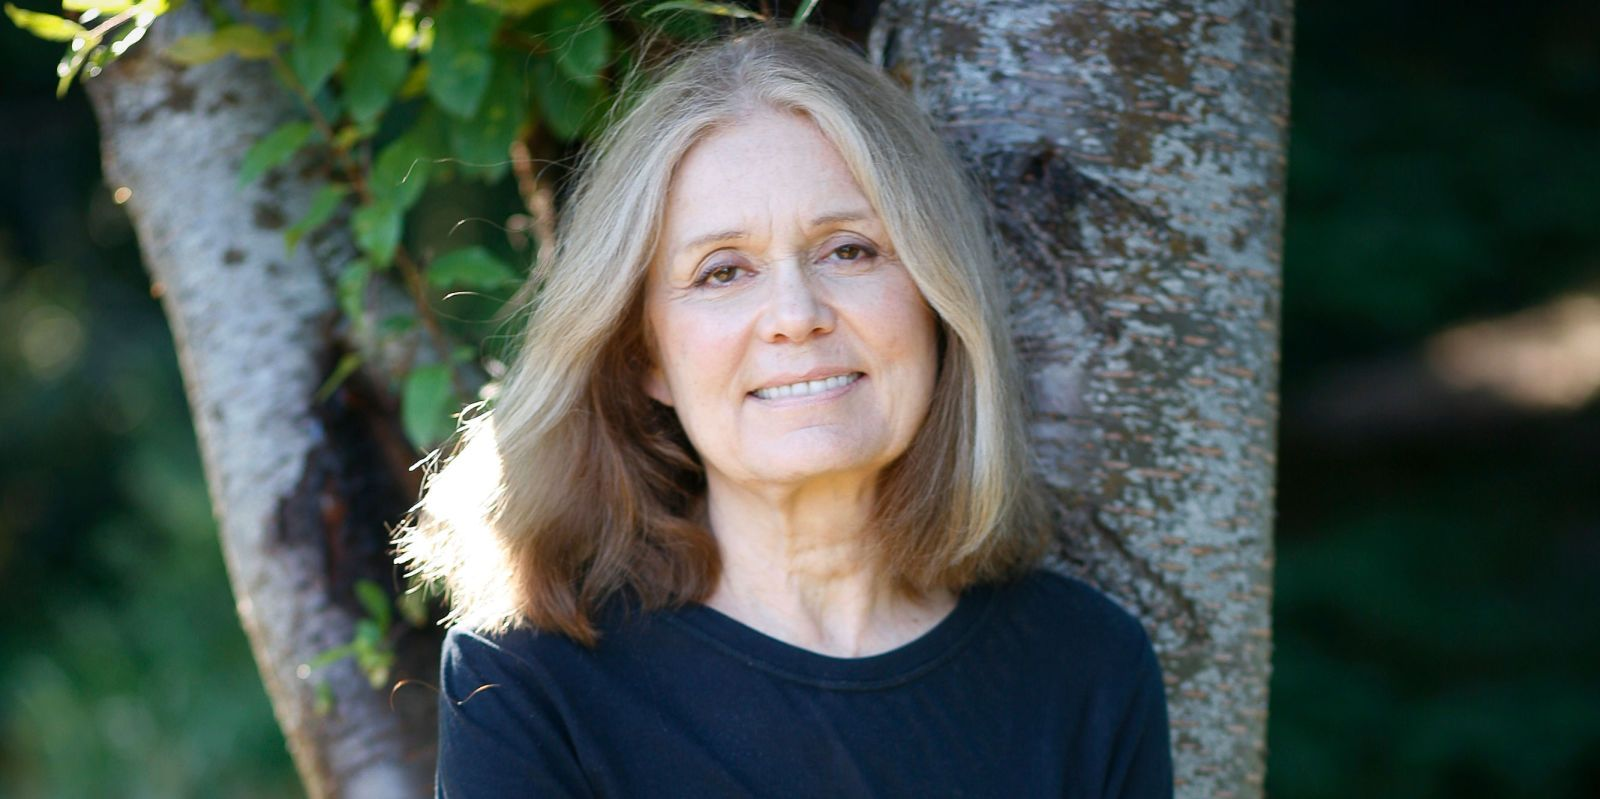 gloria steinem my life on the roadgloria steinem my life on the road, gloria steinem books, gloria steinem bio, gloria steinem reddit, gloria steinem ms, gloria steinem christian bale, gloria steinem story, gloria steinem memoir, gloria steinem family, gloria steinem wilma mankiller, gloria steinem and betty friedan, gloria steinem my life, gloria steinem woman, gloria steinem and israel, gloria steinem biography, gloria steinem and flo kennedy, gloria steinem phrases, gloria steinem epub, gloria steinem ideas, gloria steinem quotes